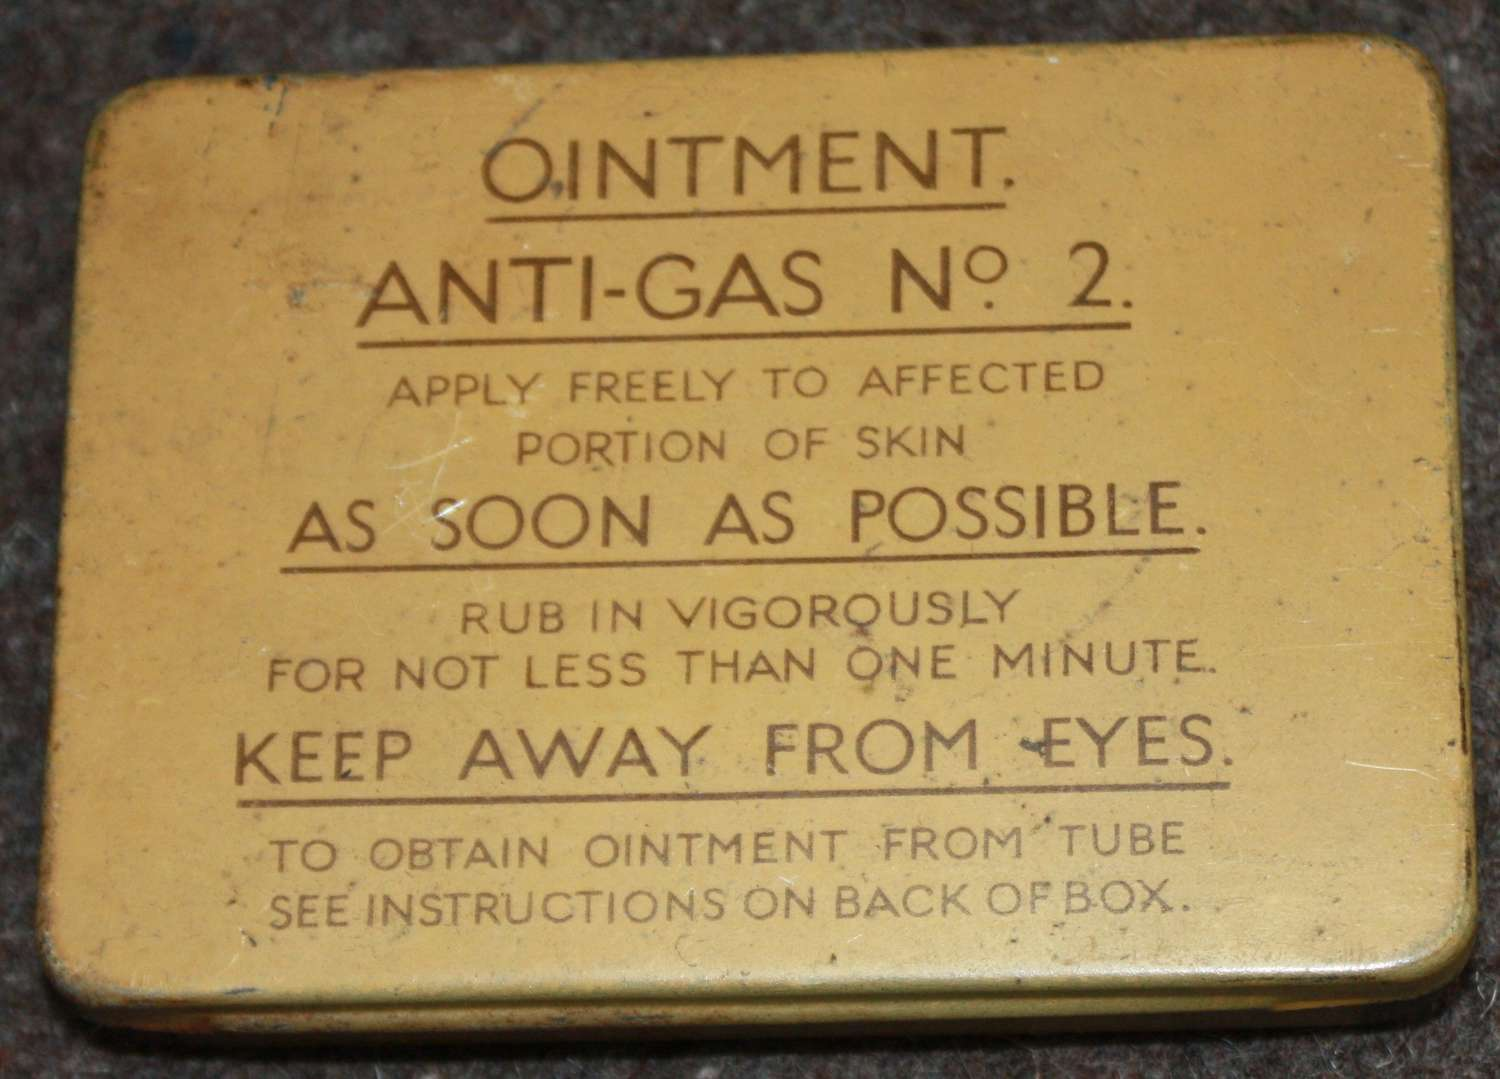 A VERY GOOD CLEAN EARLY 1940 DATED ANTI GAS OINTMENT NO2 TIN